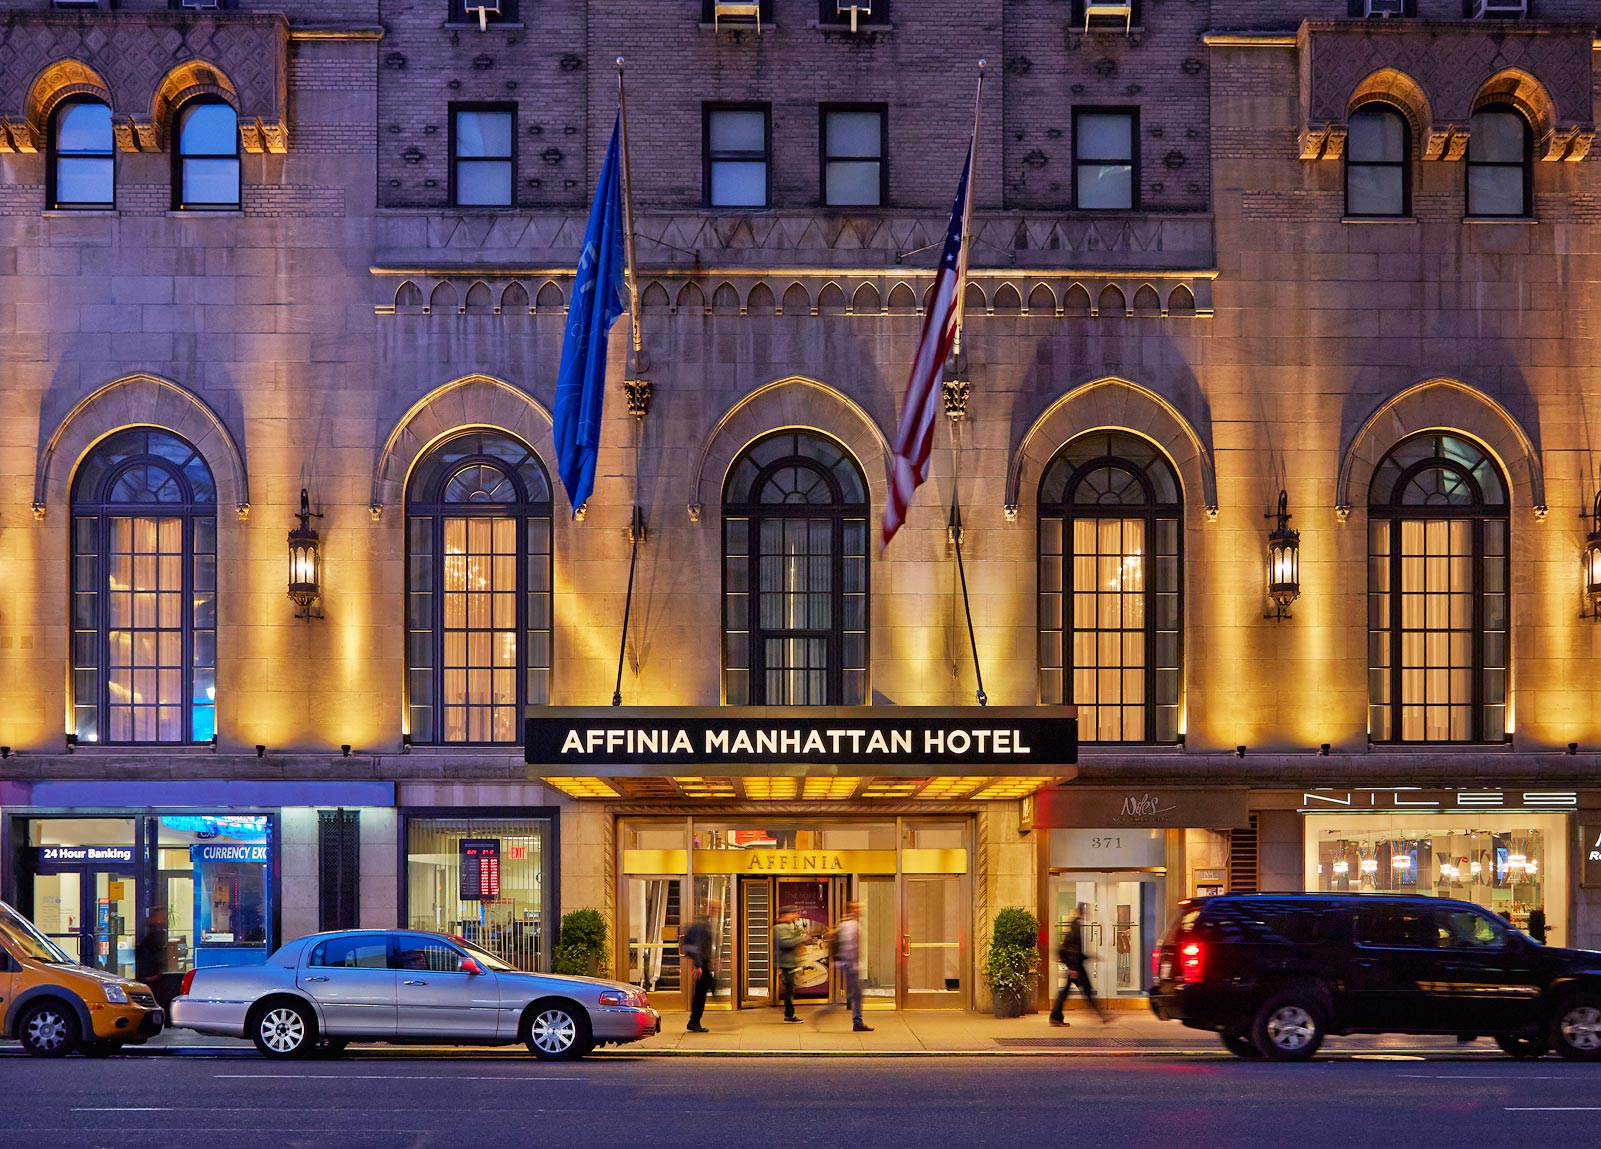 Affinia Manhattan Hotel New York